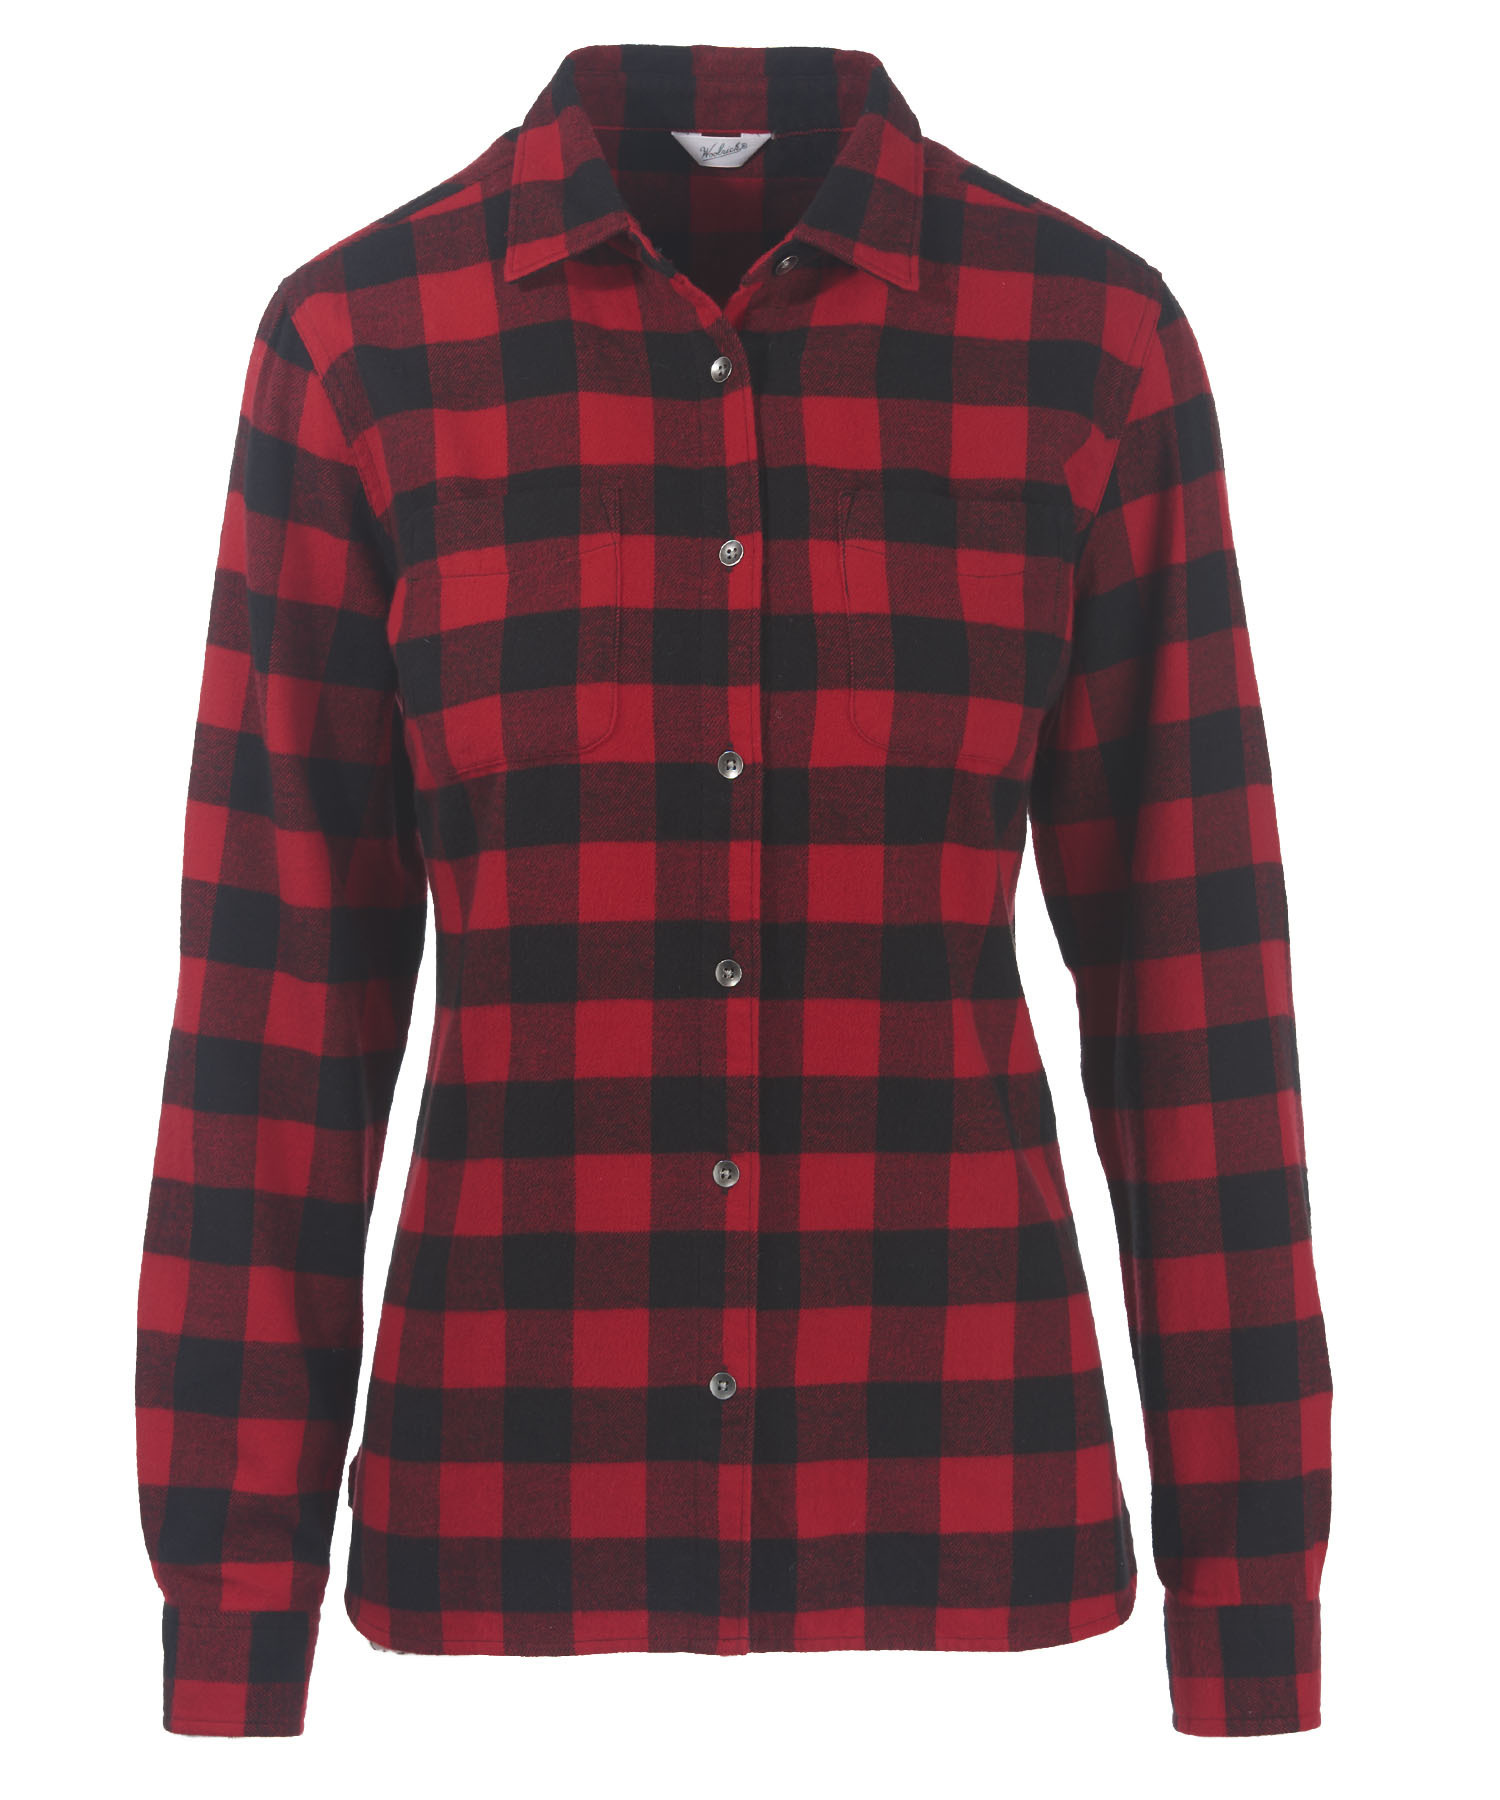 flannel shirts prev VJEWMZM